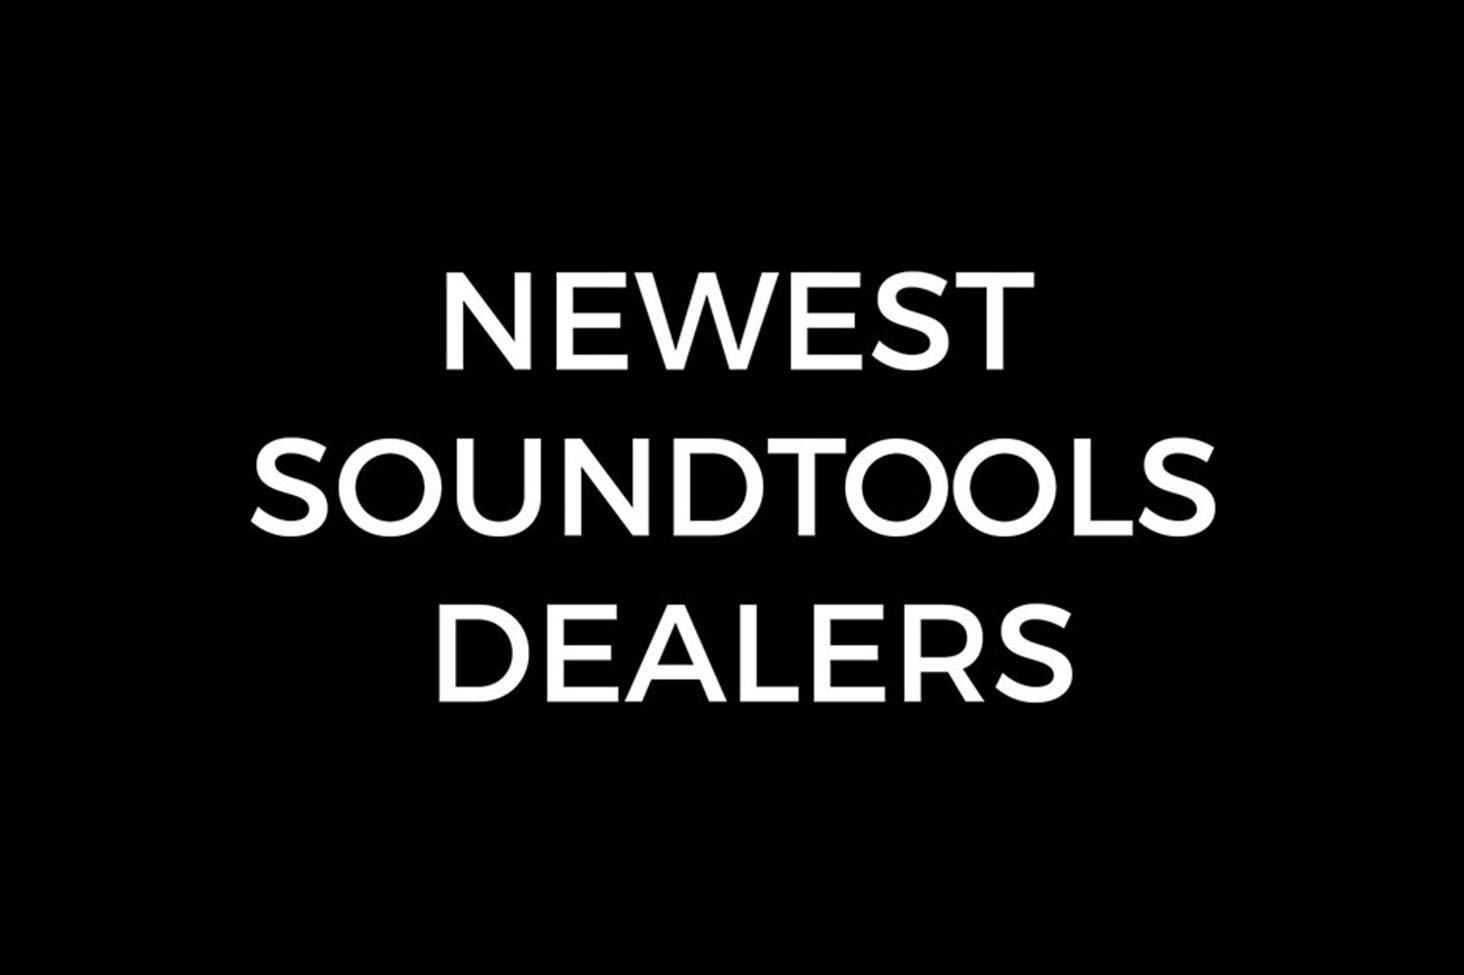 SoundTools New dealers